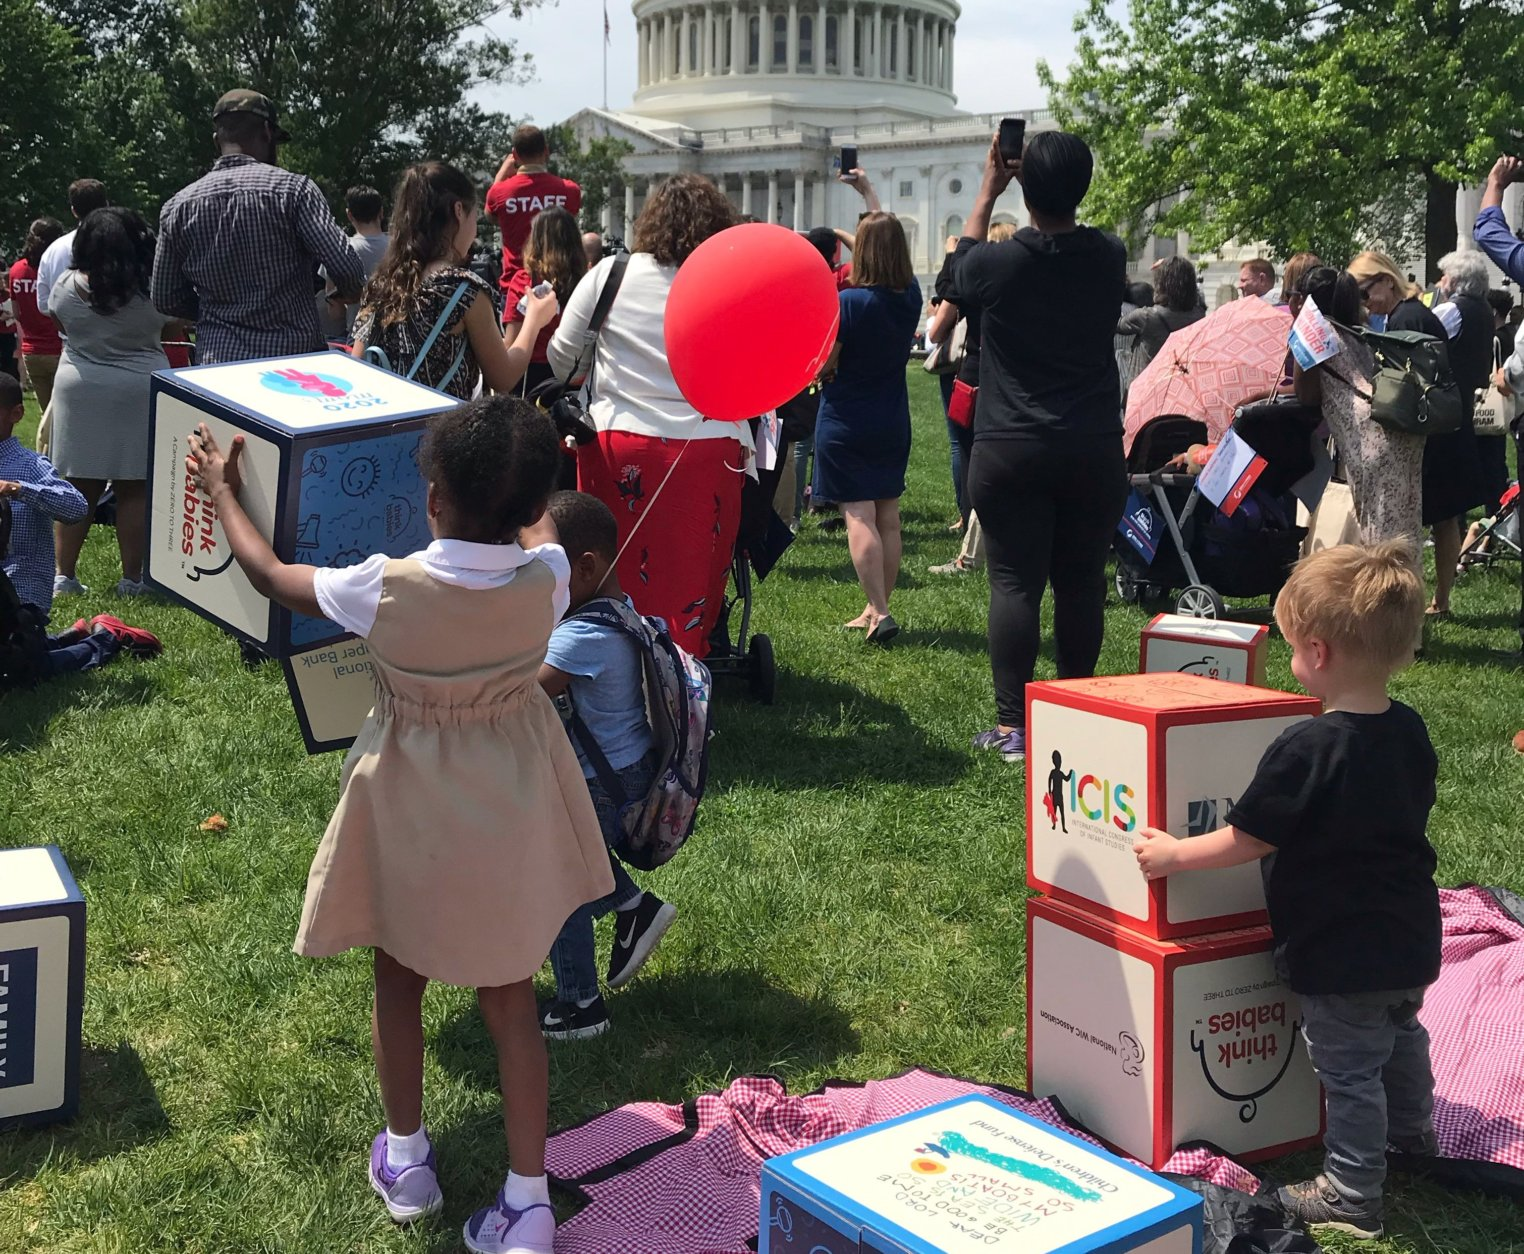 Families gathered Tuesday for the Strolling Thunder rally at the Capitol, where they called on Congress to pass legislation for federal paid family leave and to do more to address the cost of day care. (WTOP/Mitchell Miller)